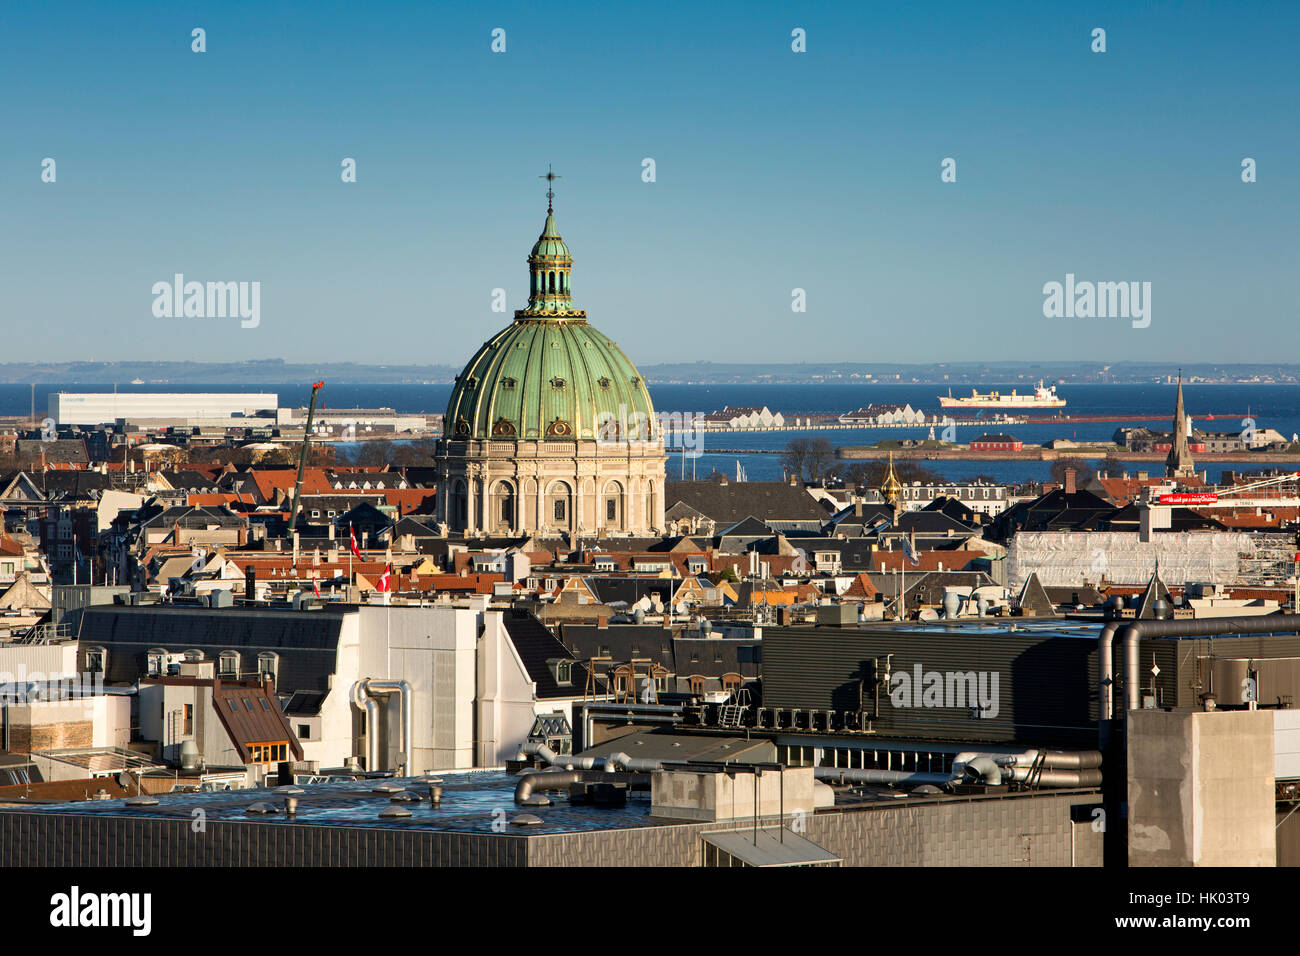 Danemark, copenhague, dôme vert de Frederiks Kirke, en Église, elevated view de Christianborg Palace tower Photo Stock